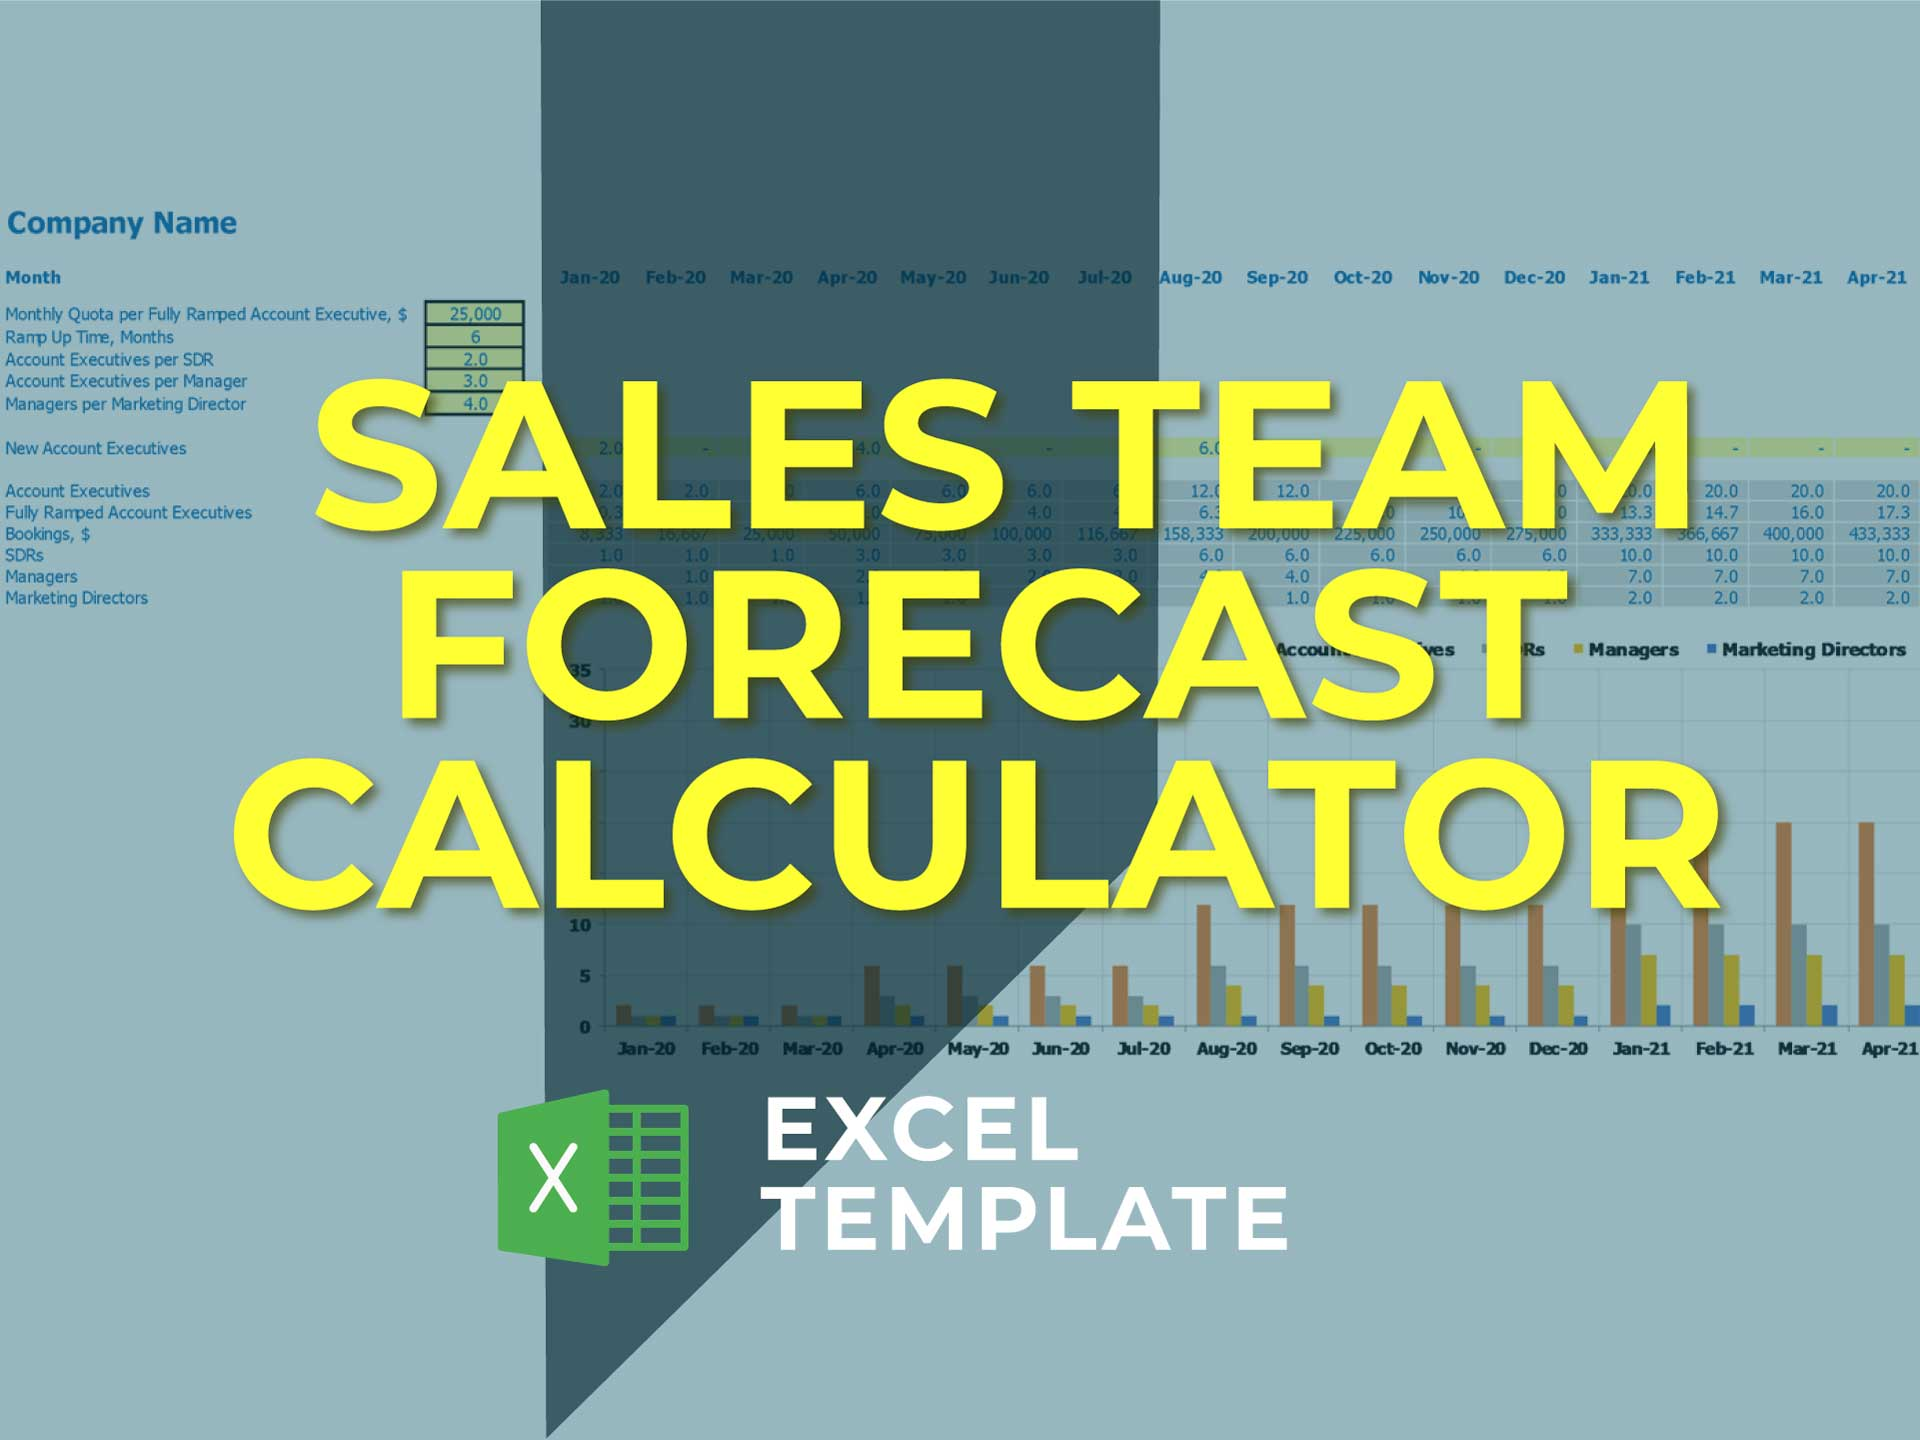 Sales Team Forecast Calculator